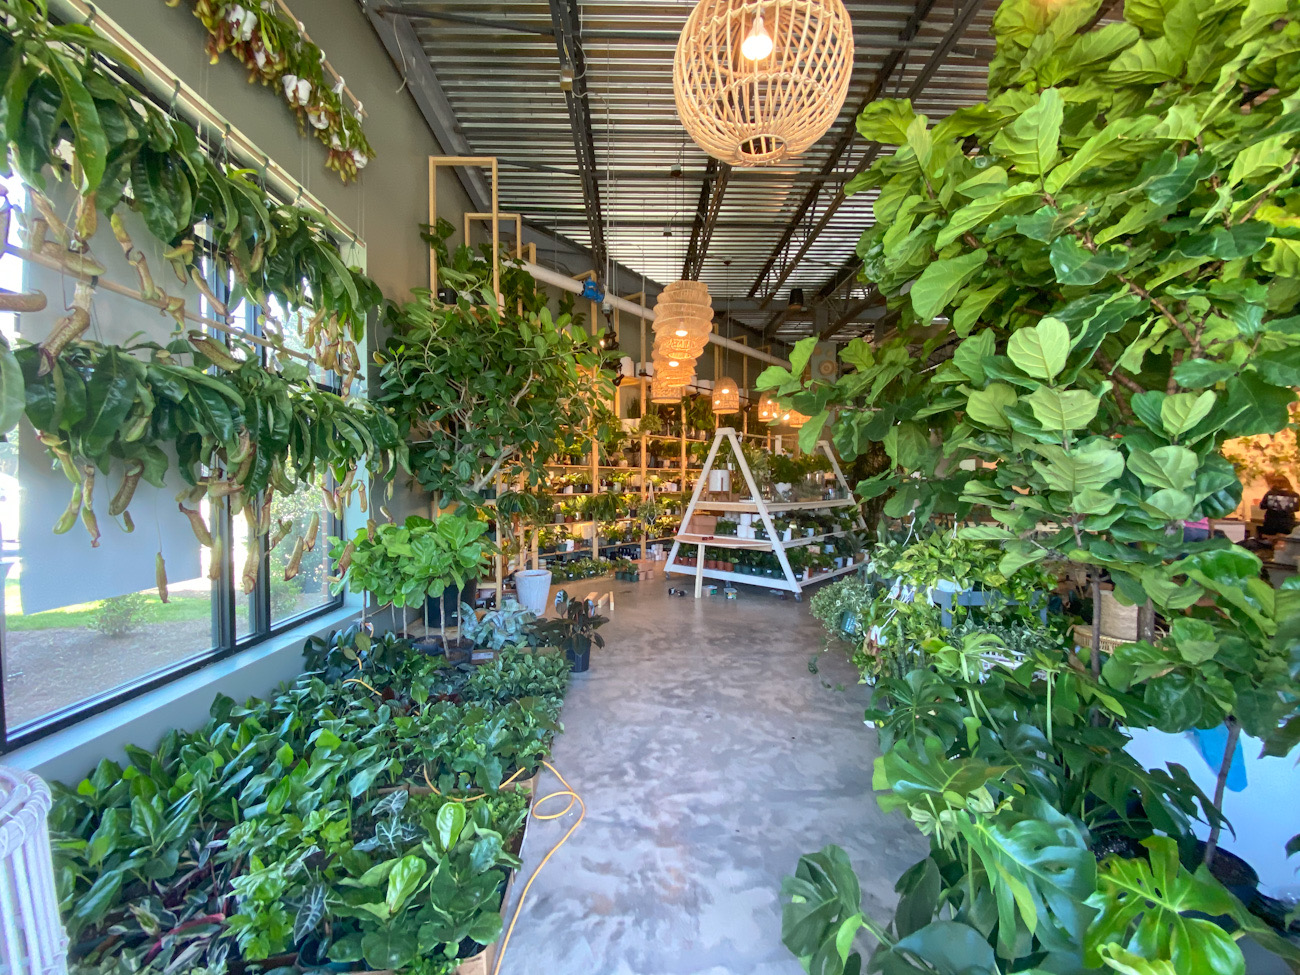 4 cool new plant shops in Charlotte